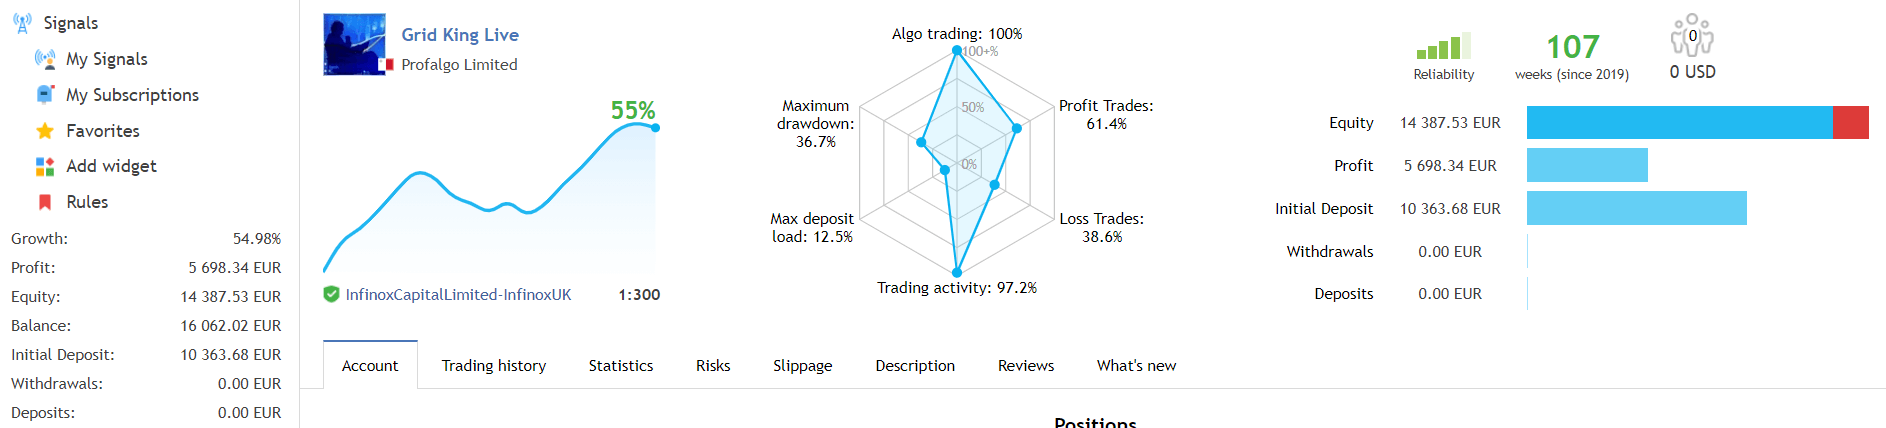 Grid King trading results